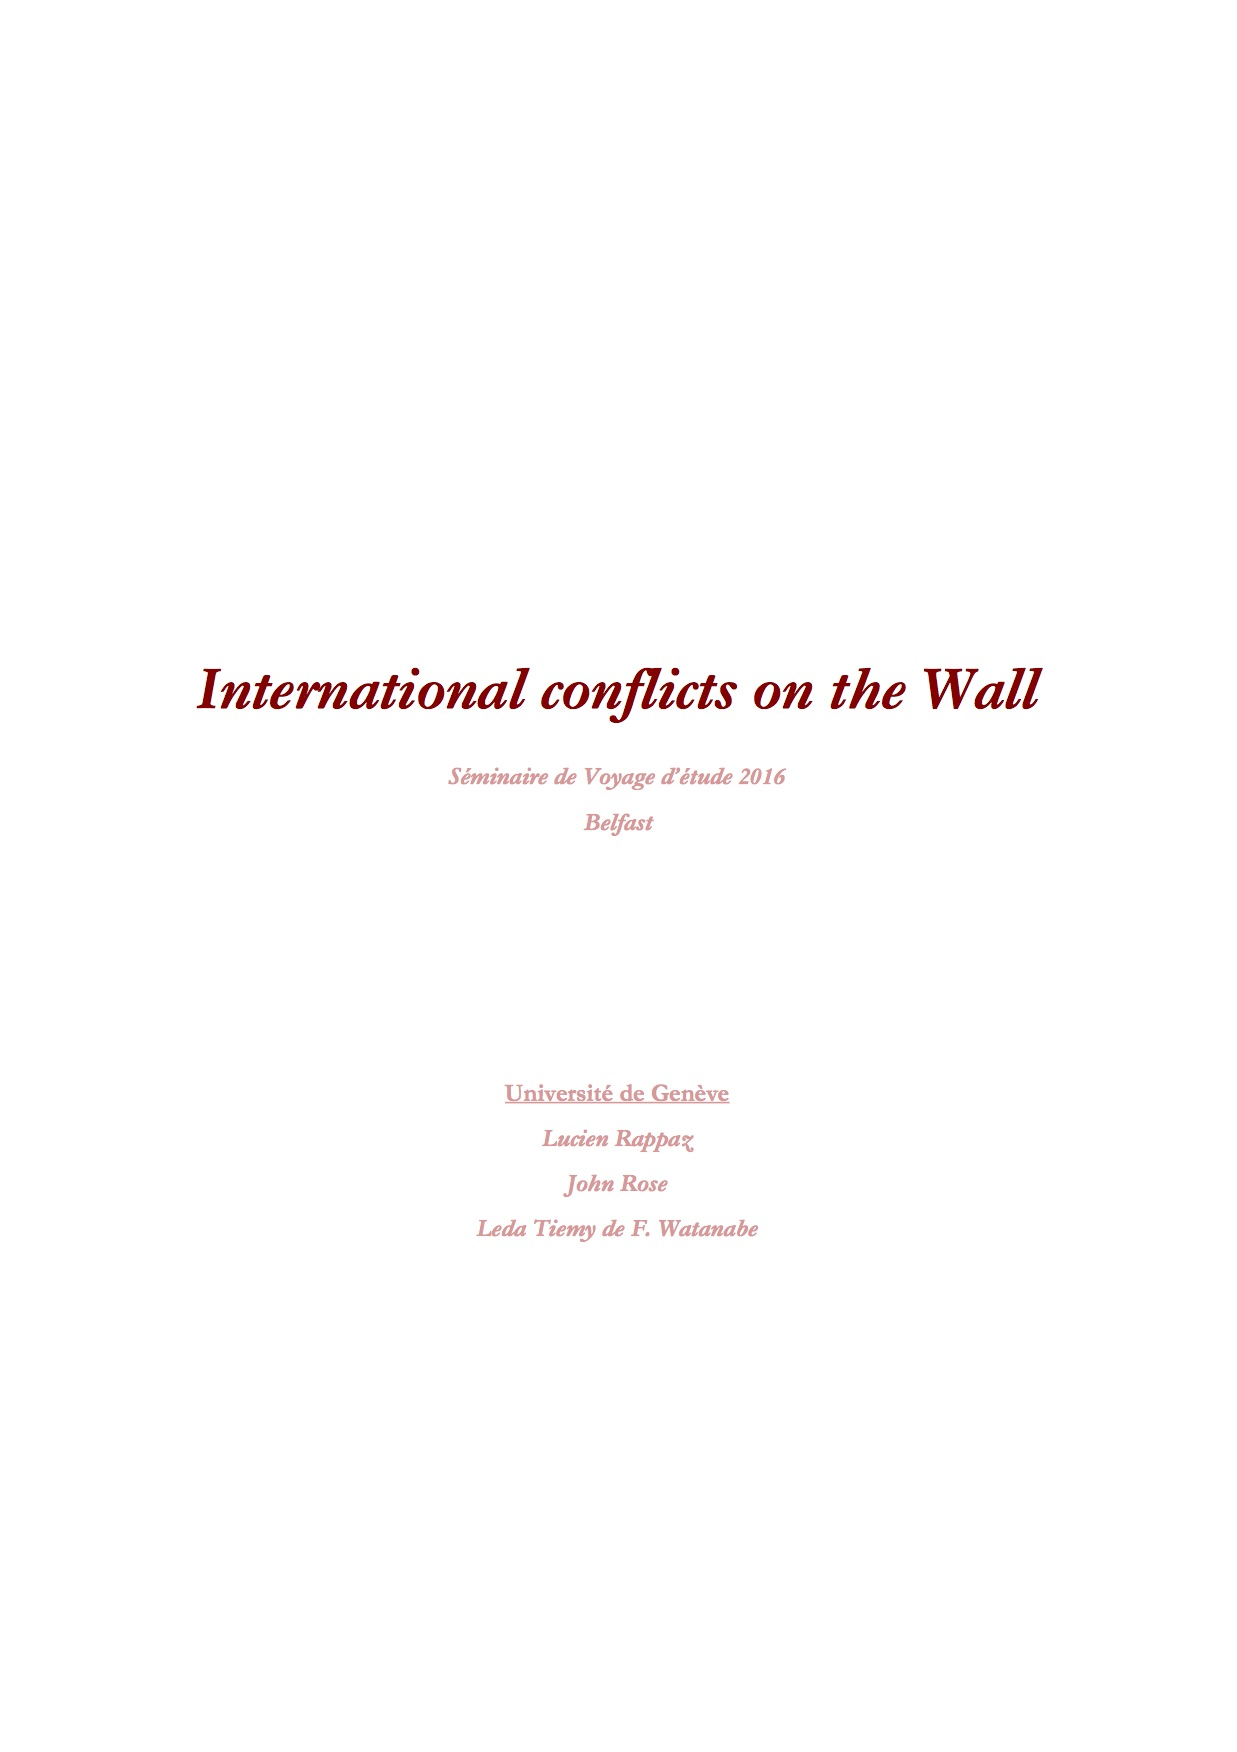 Internation-conflicts-on-the-wall (1)